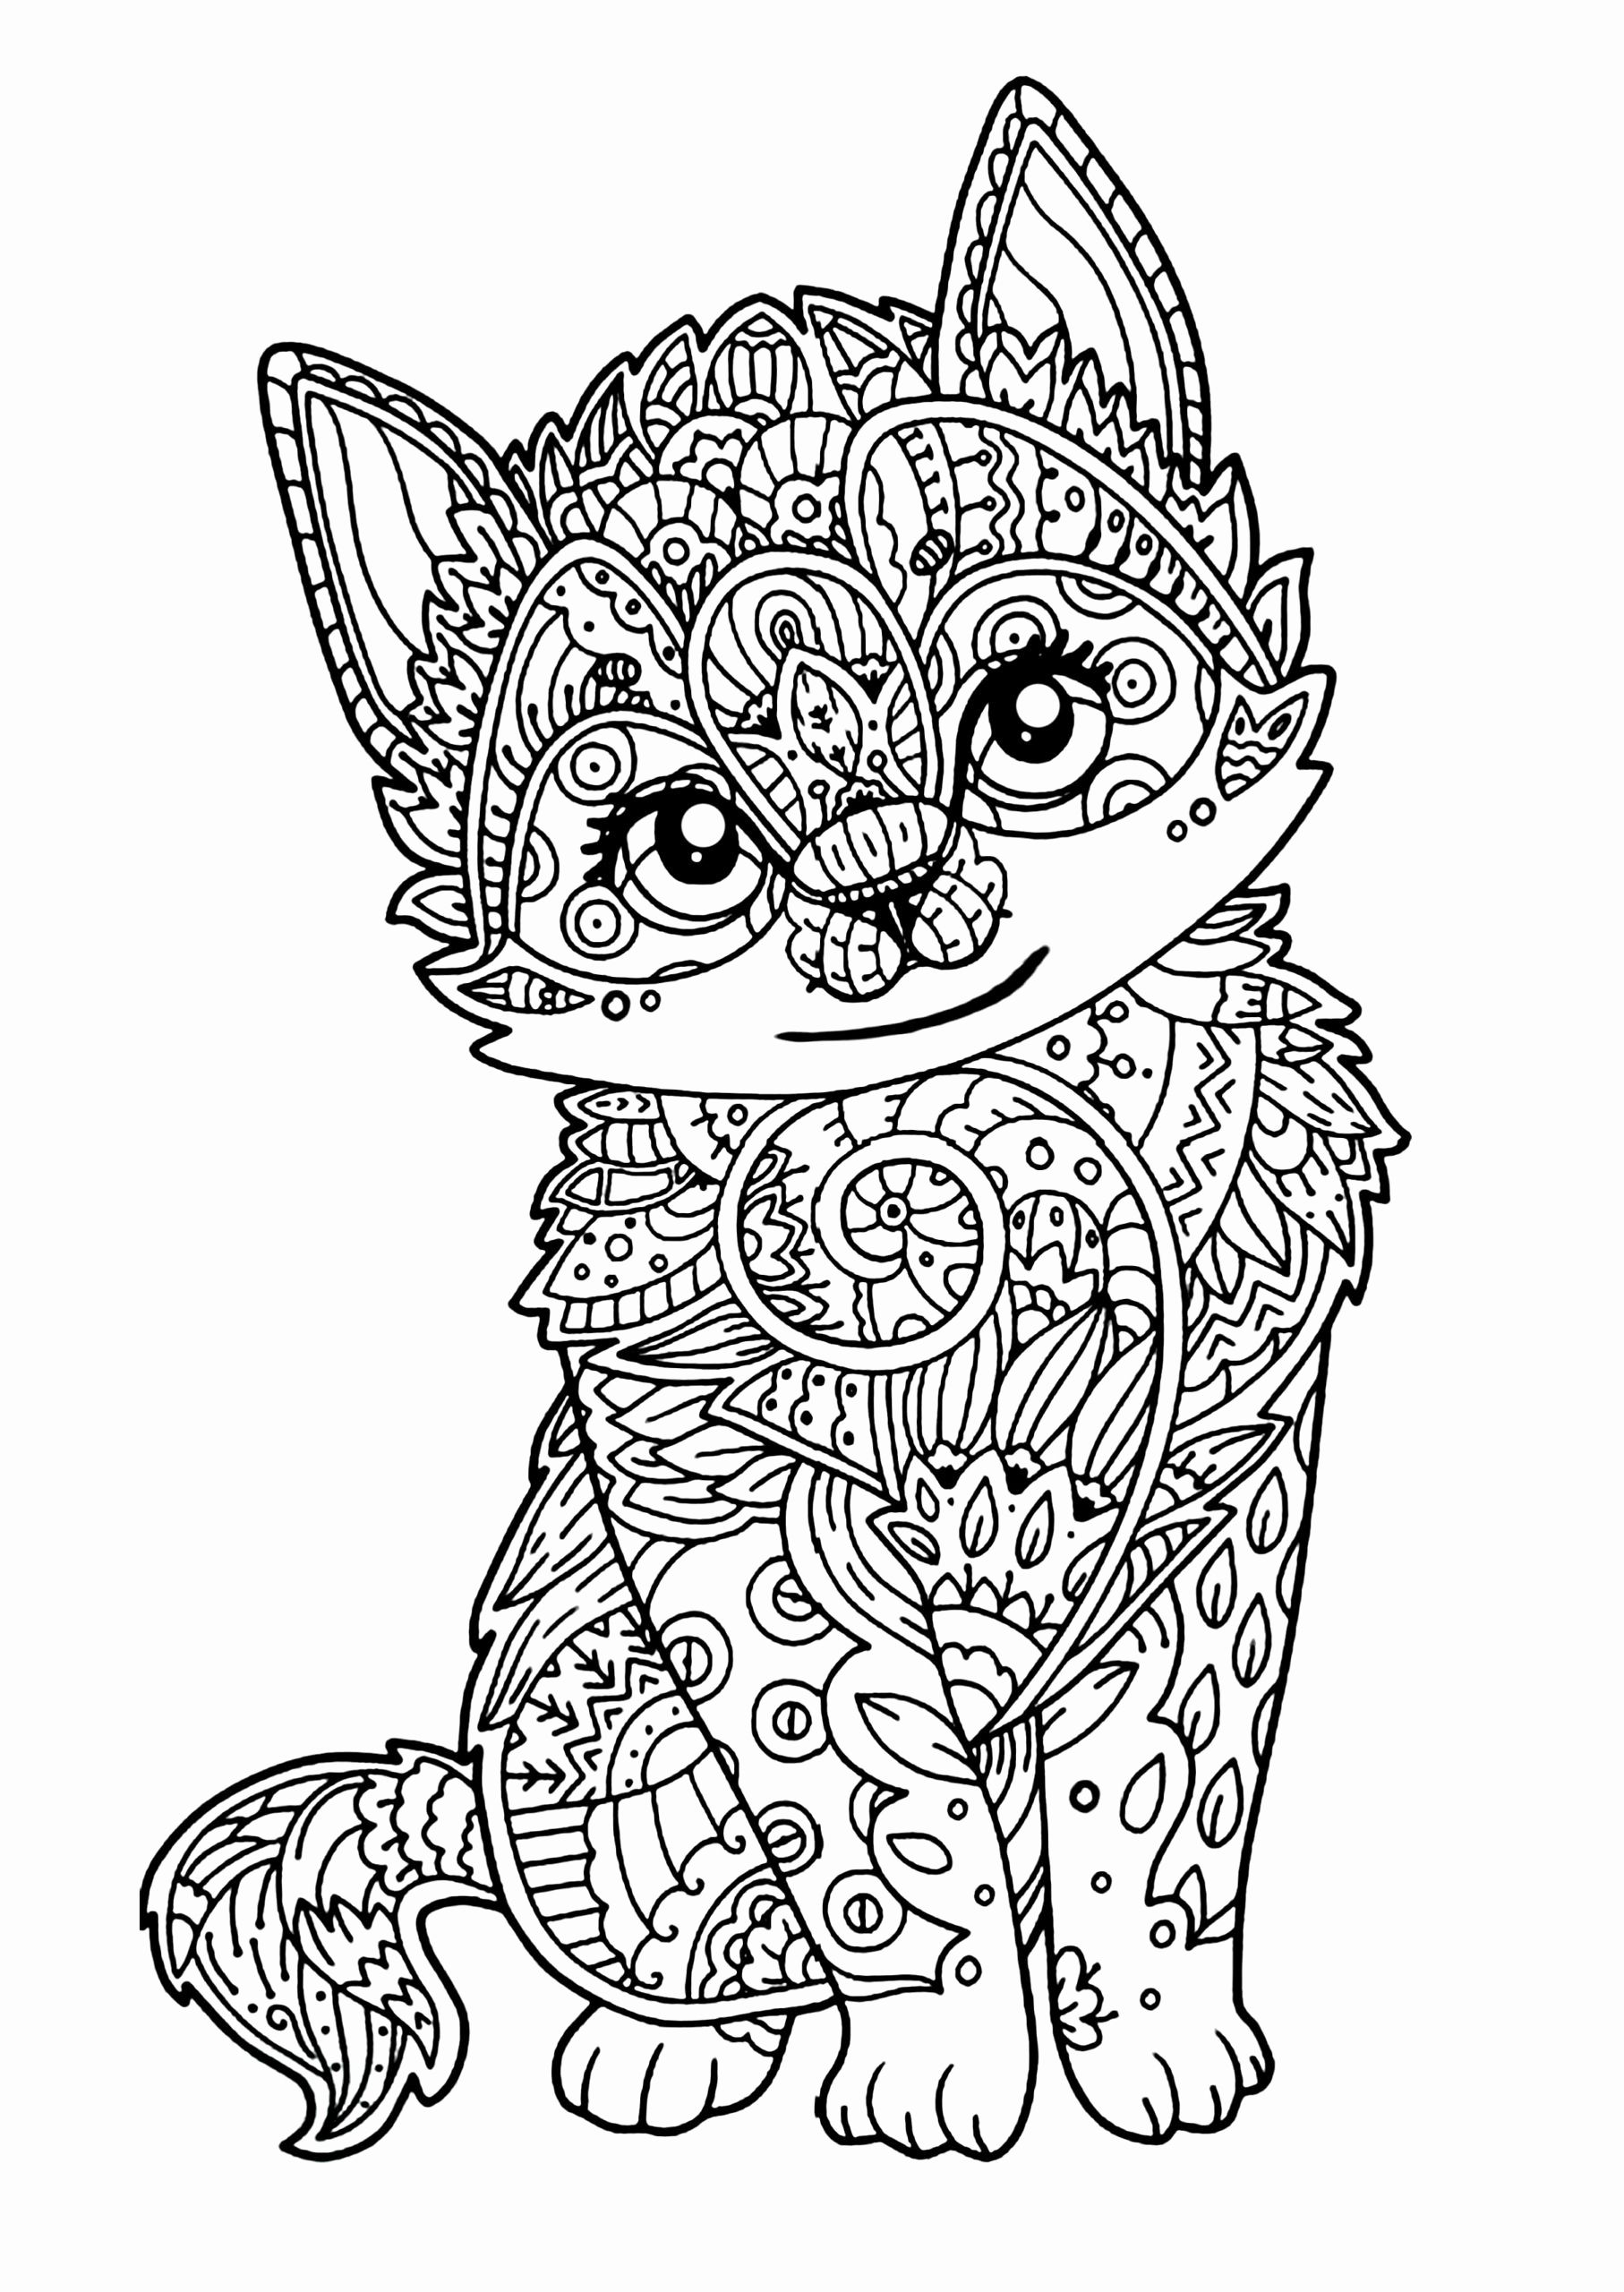 Girl Cat Little Kids Coloring Pages In 2020 Cat Coloring Book Kittens Coloring Animal Coloring Books